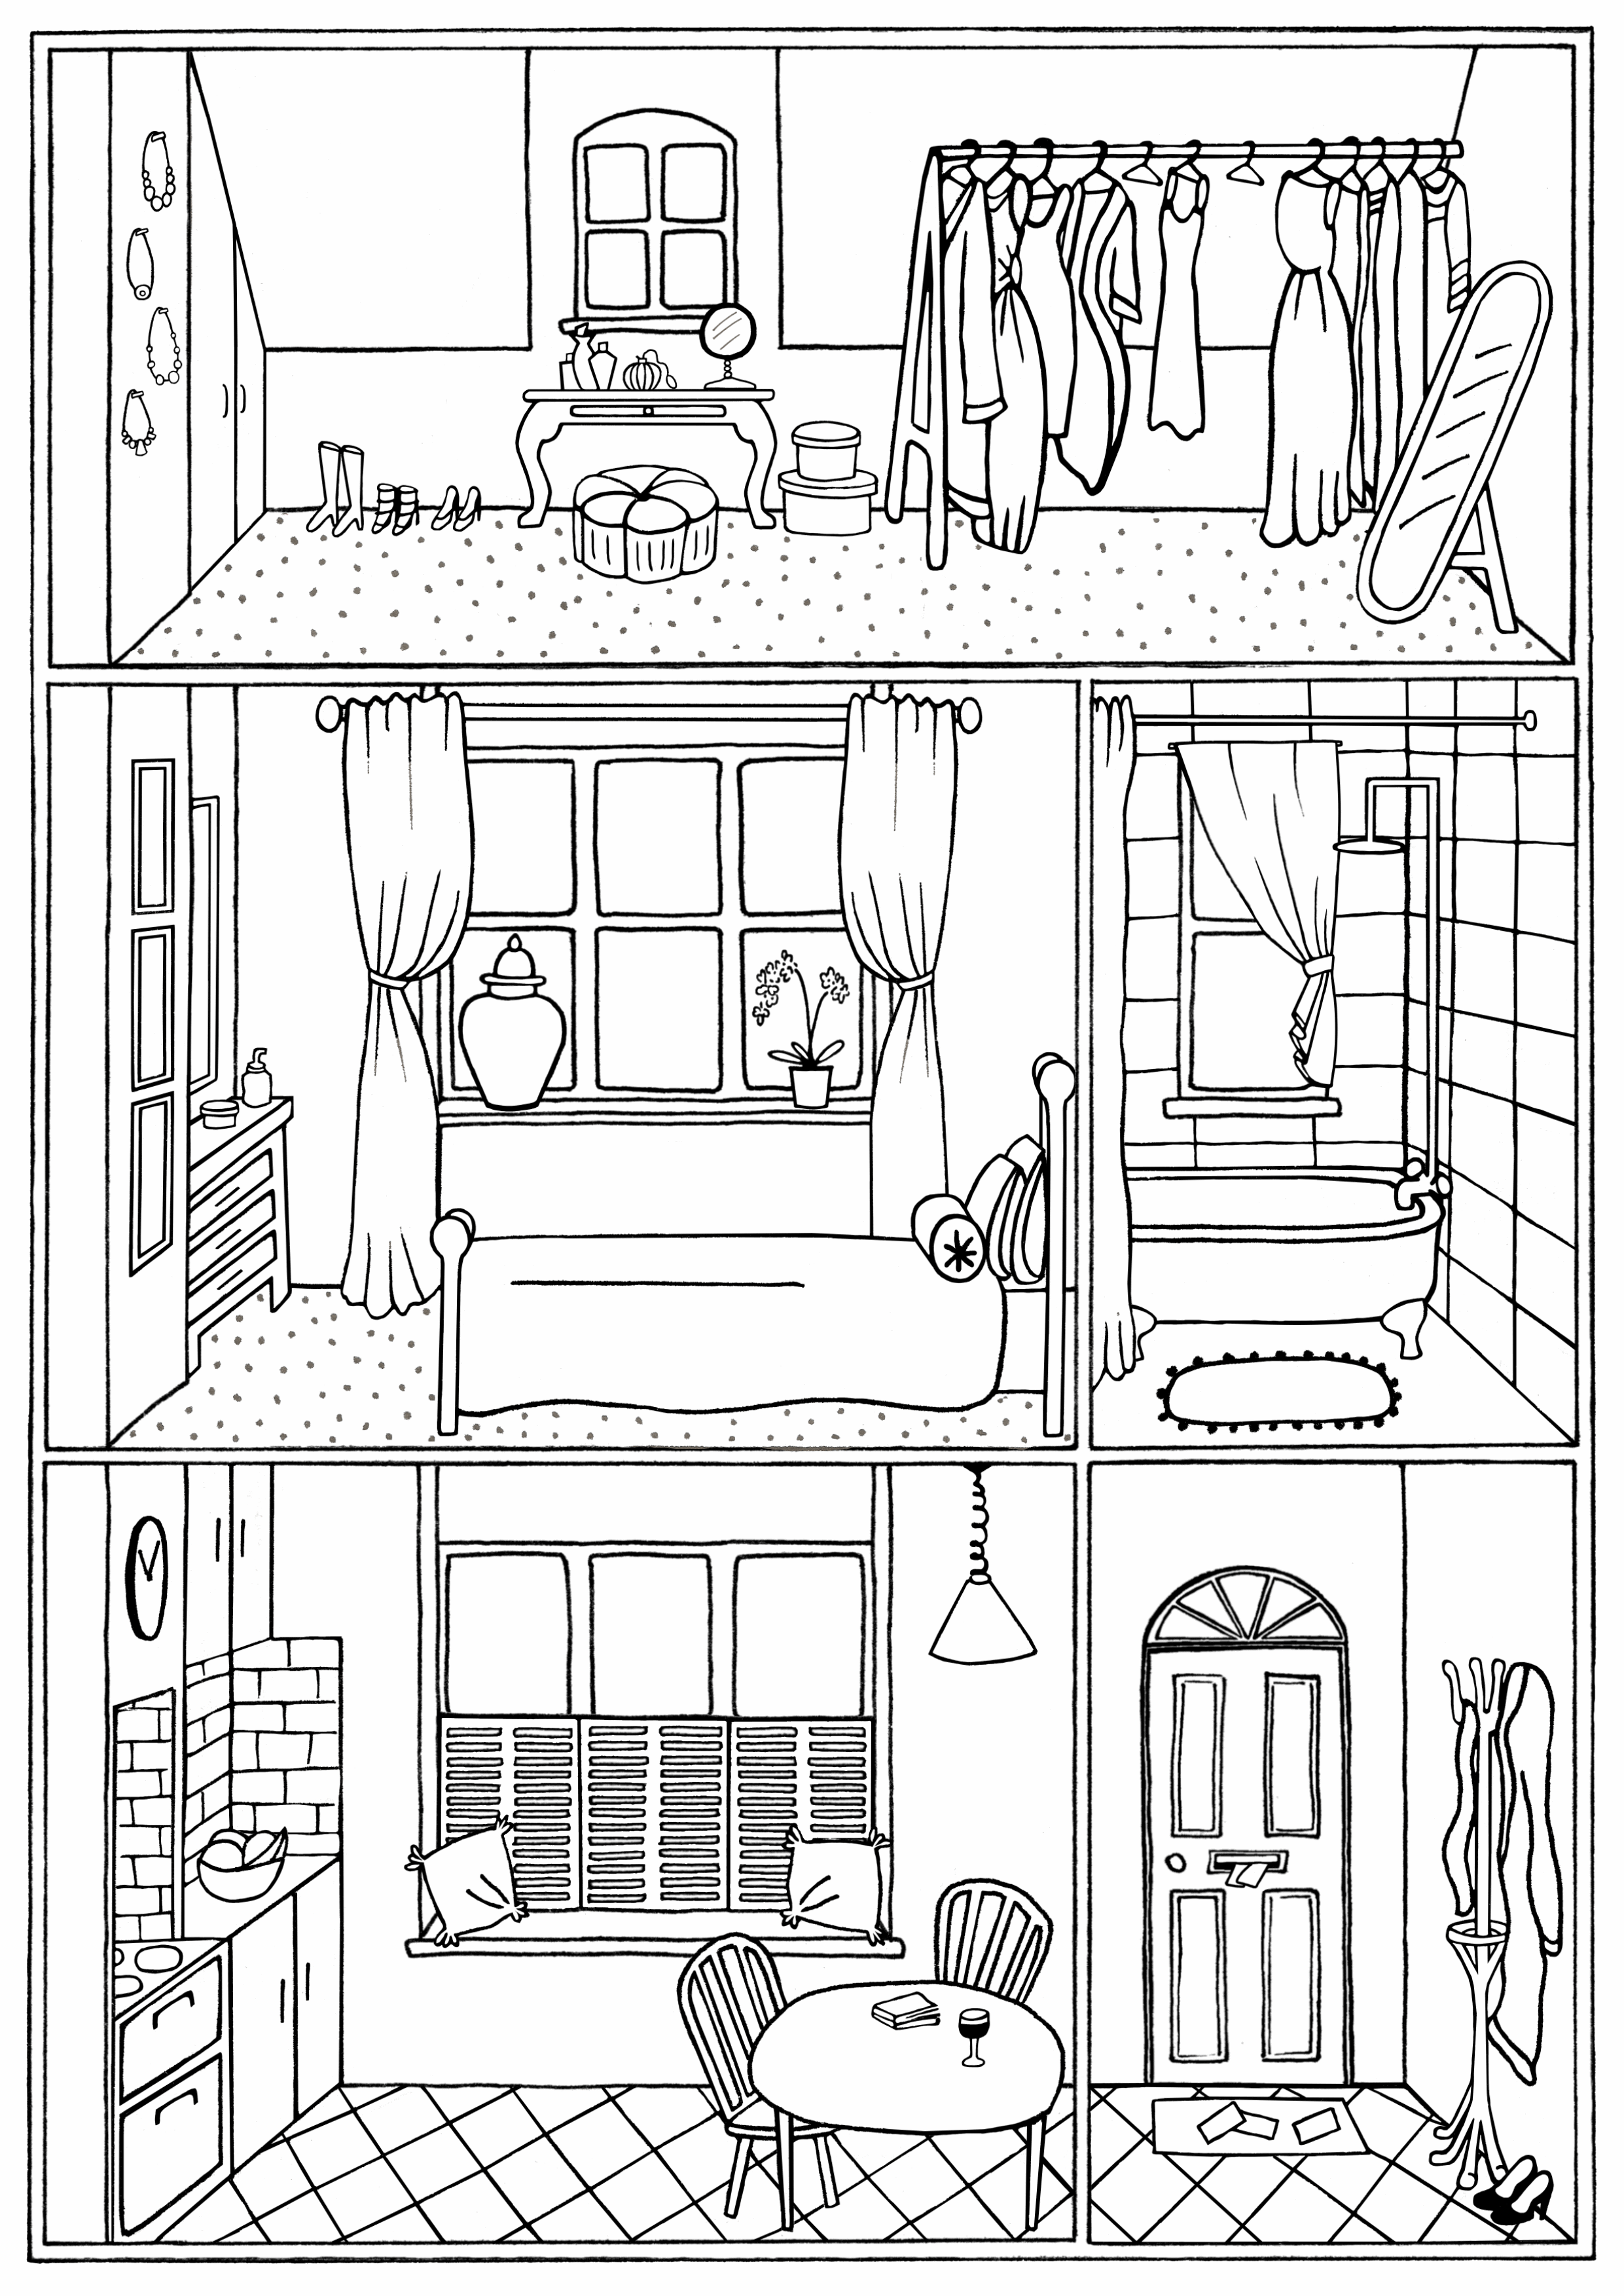 House Interior Colouring Page No 22 Line Drawing Download Etsy Colouring Pages House Colouring Pages House Drawing For Kids